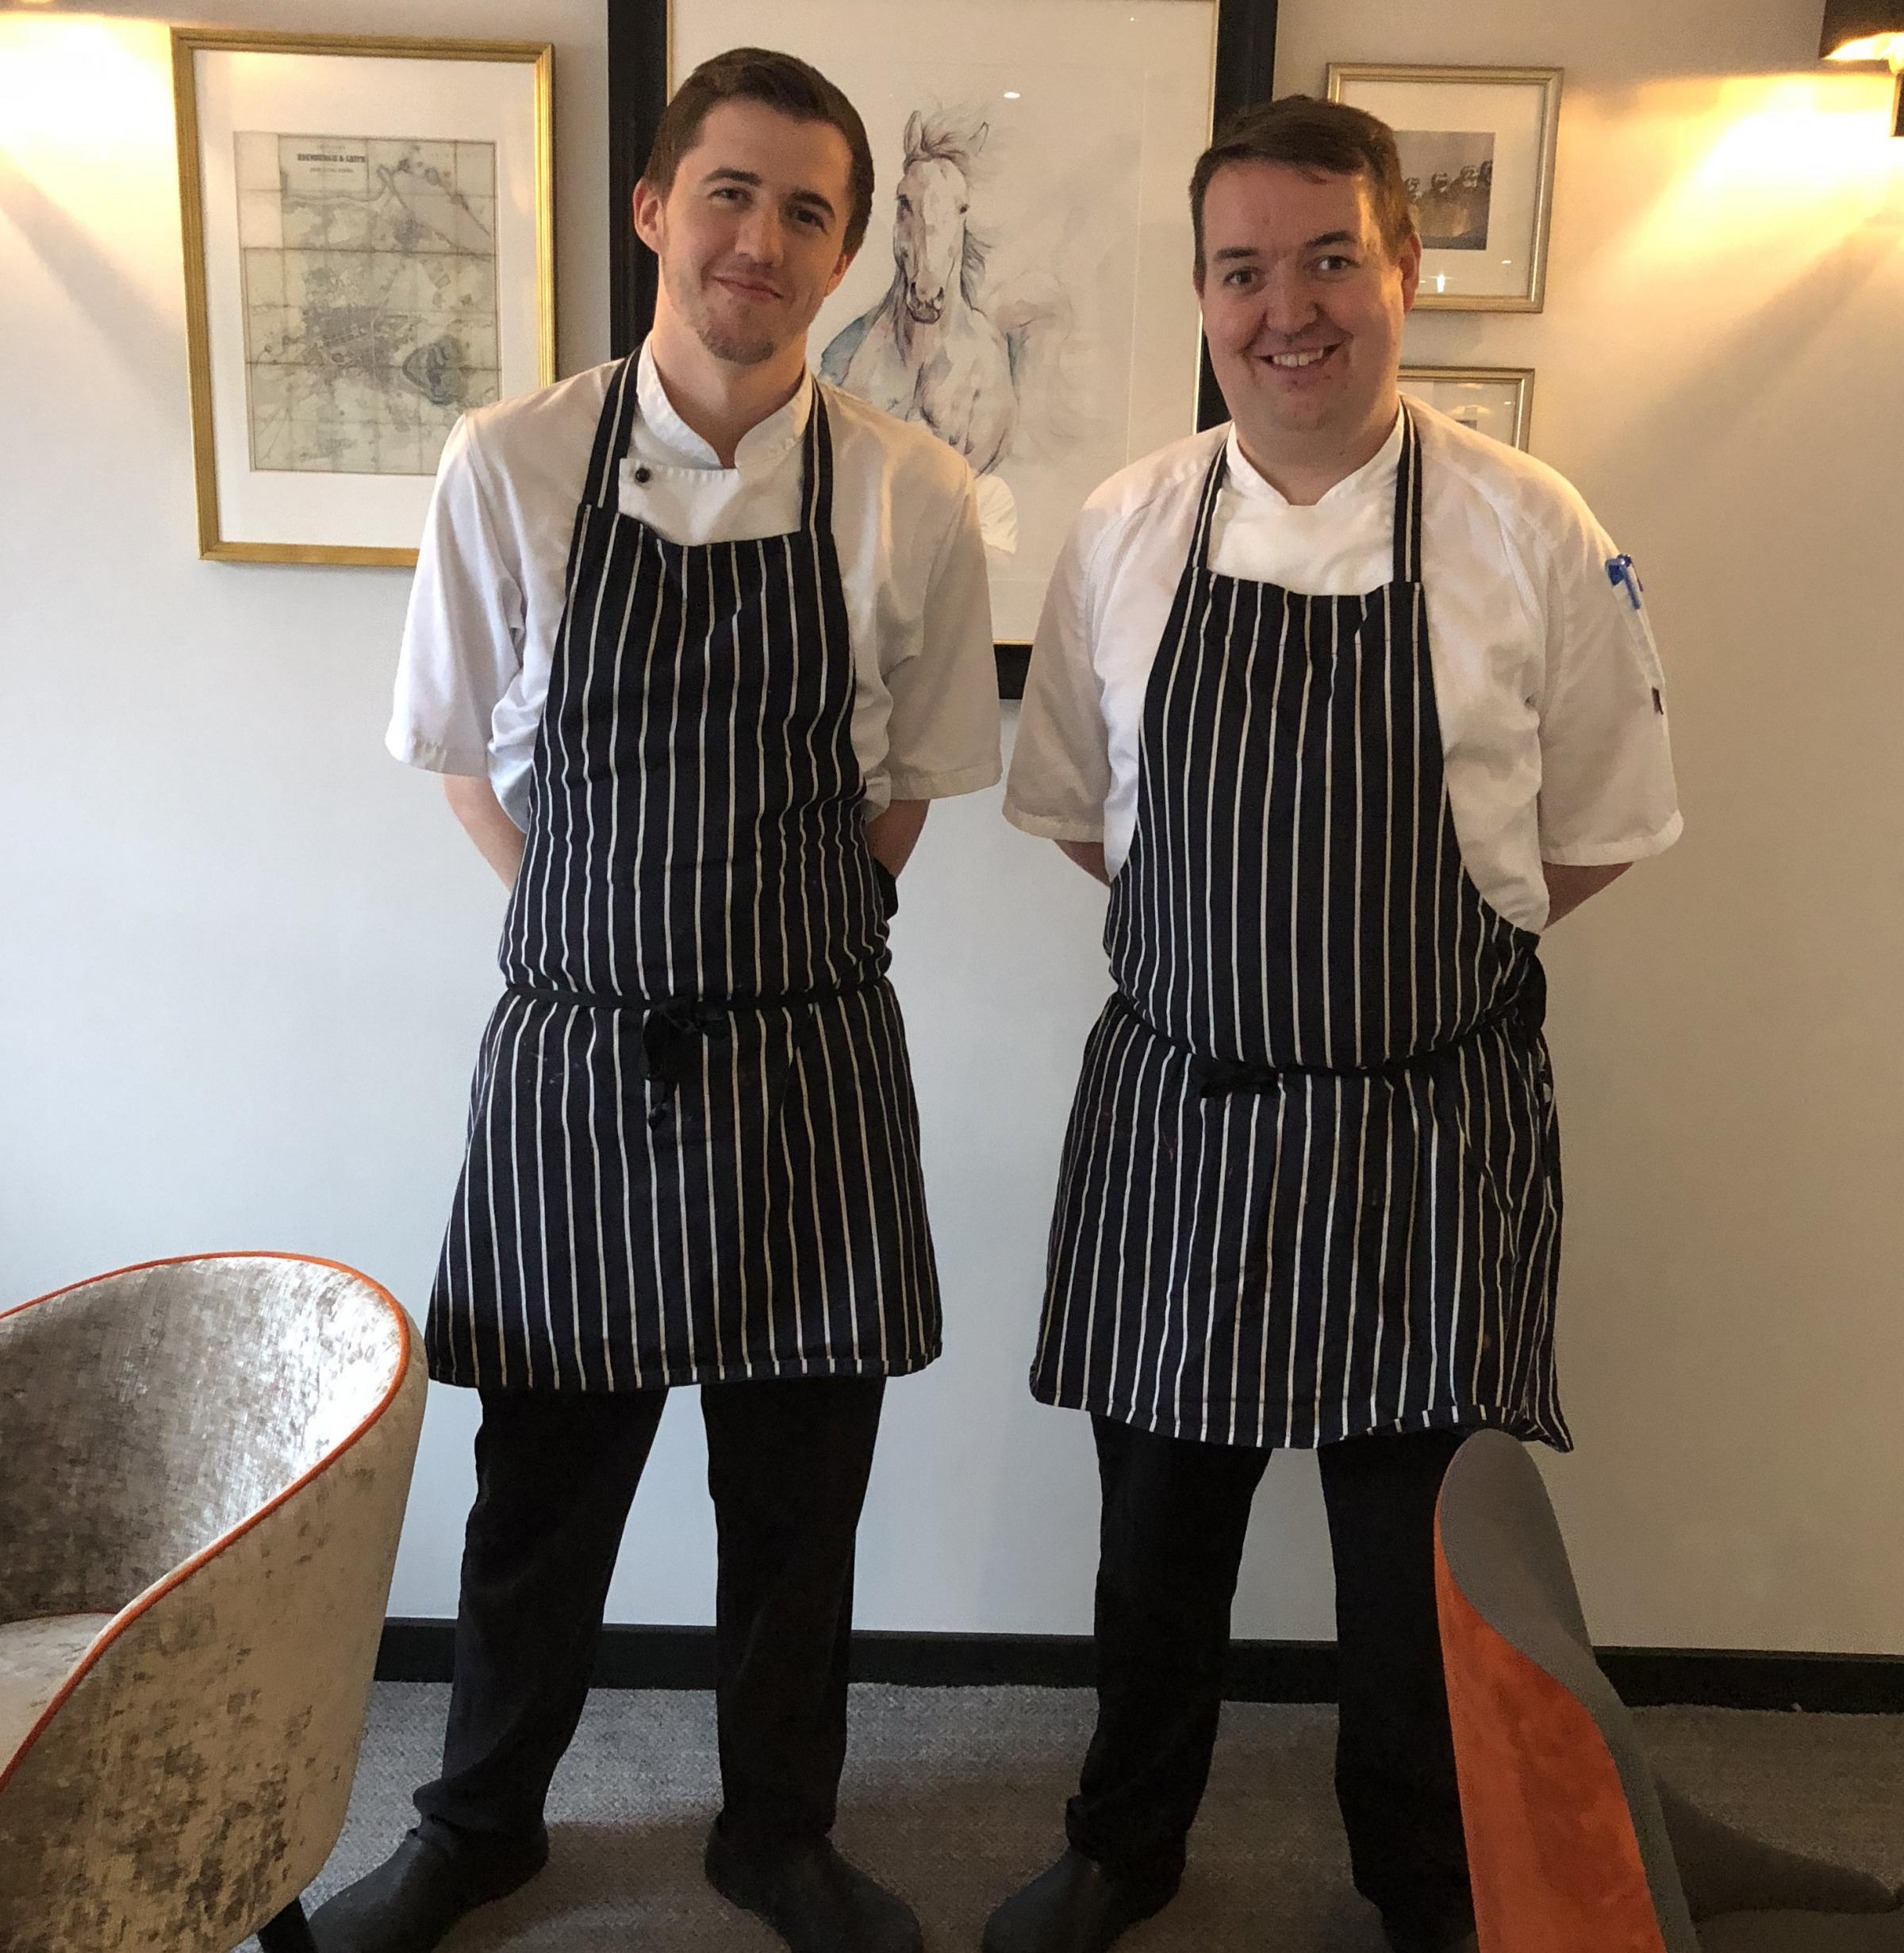 Jamie Reid, left, and Alan Dickson, from Edinburgh hotel Ten Hill Place